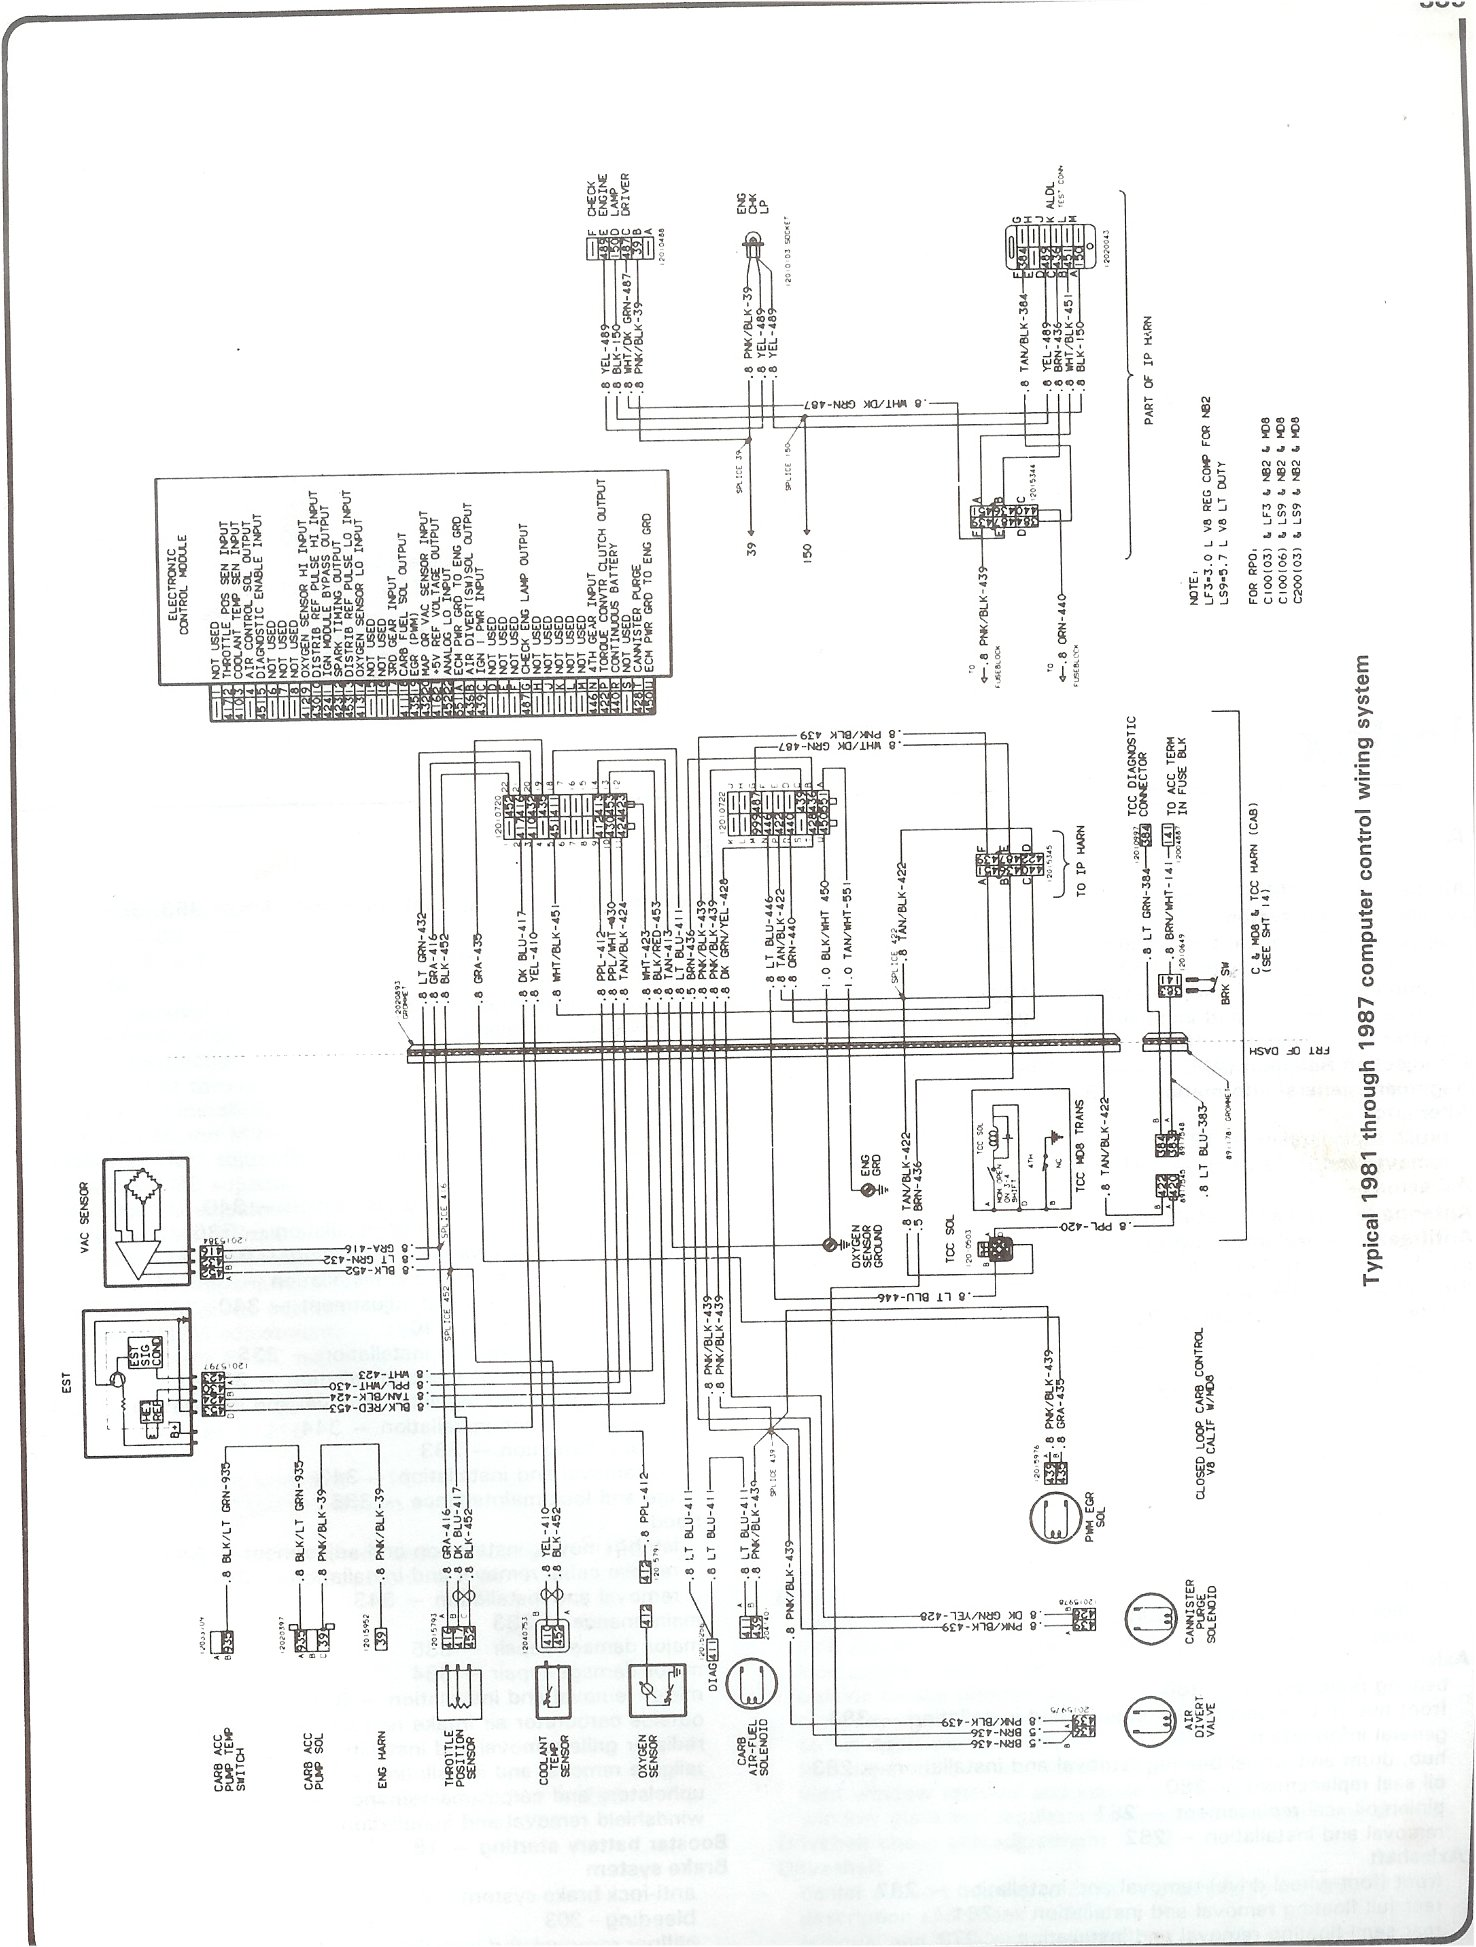 gm ignition wiring diagram 1982 simple wiring diagram rh 15 mara cujas de Chevy Ignition Switch Wiring Diagram Universal Ignition Switch Wiring Diagram